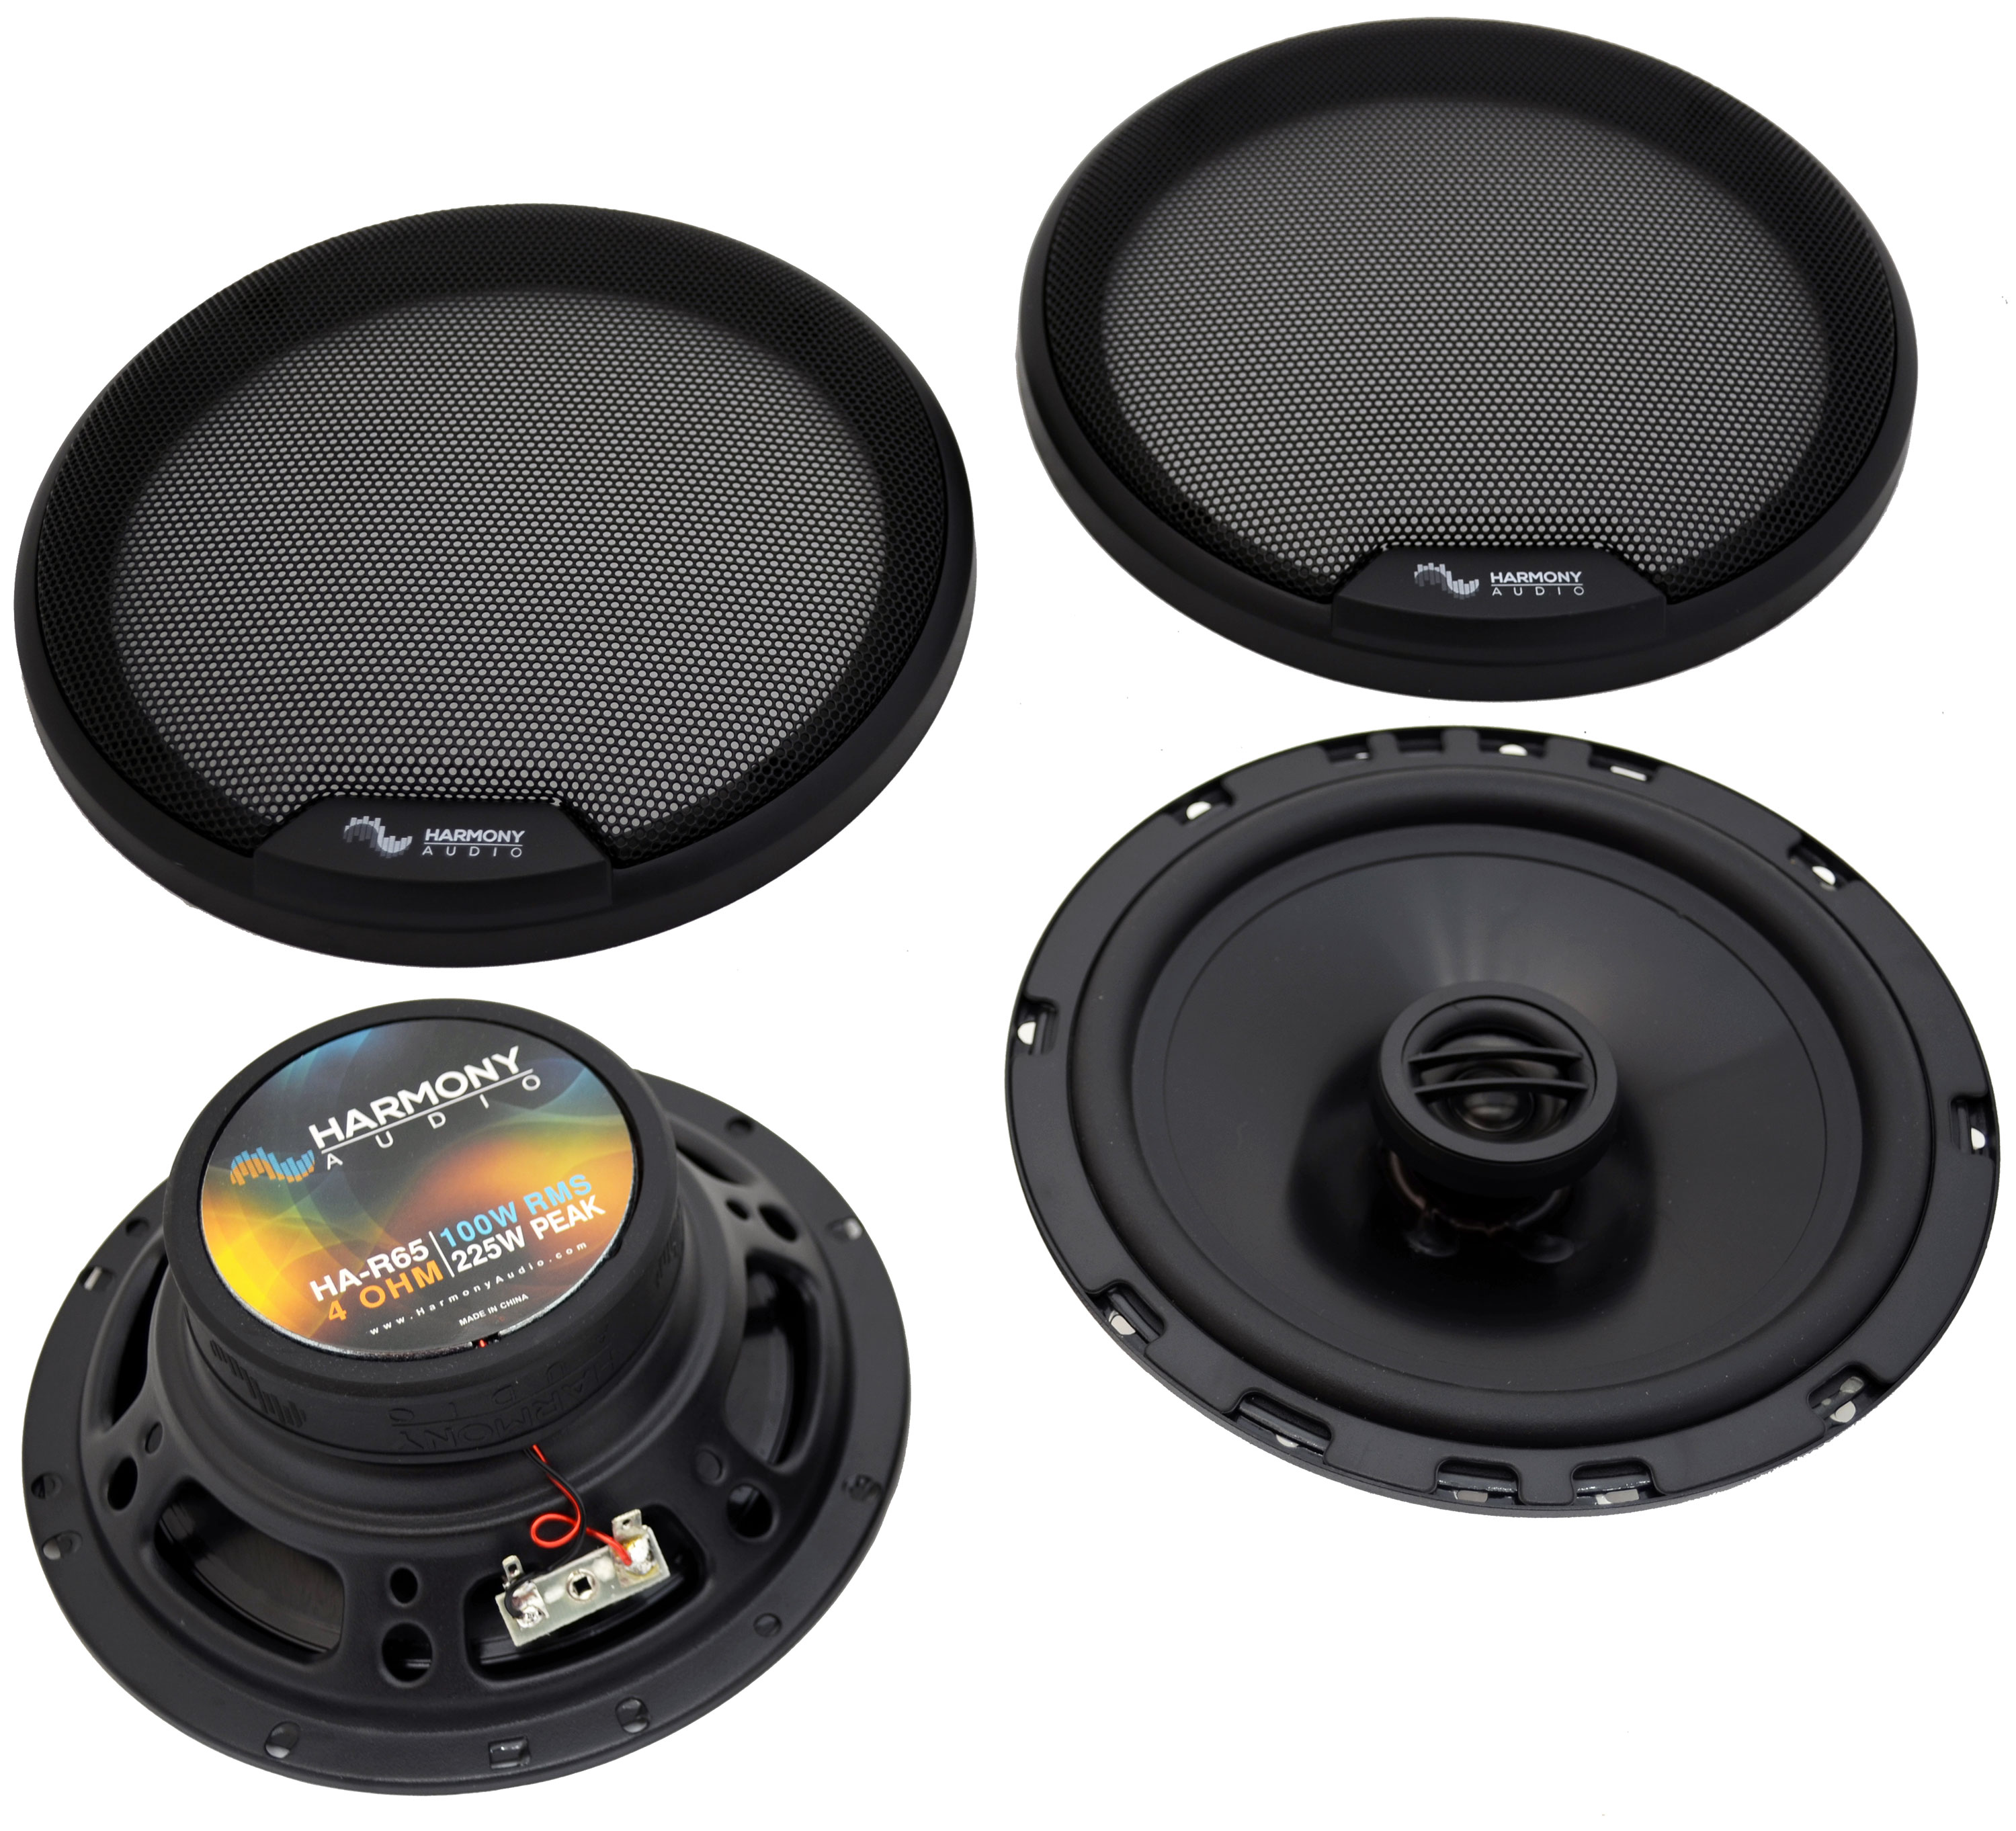 Fits BMW 3 Series 2006 Rear Deck Replacement Speaker Harmony HA-R65 Speakers New